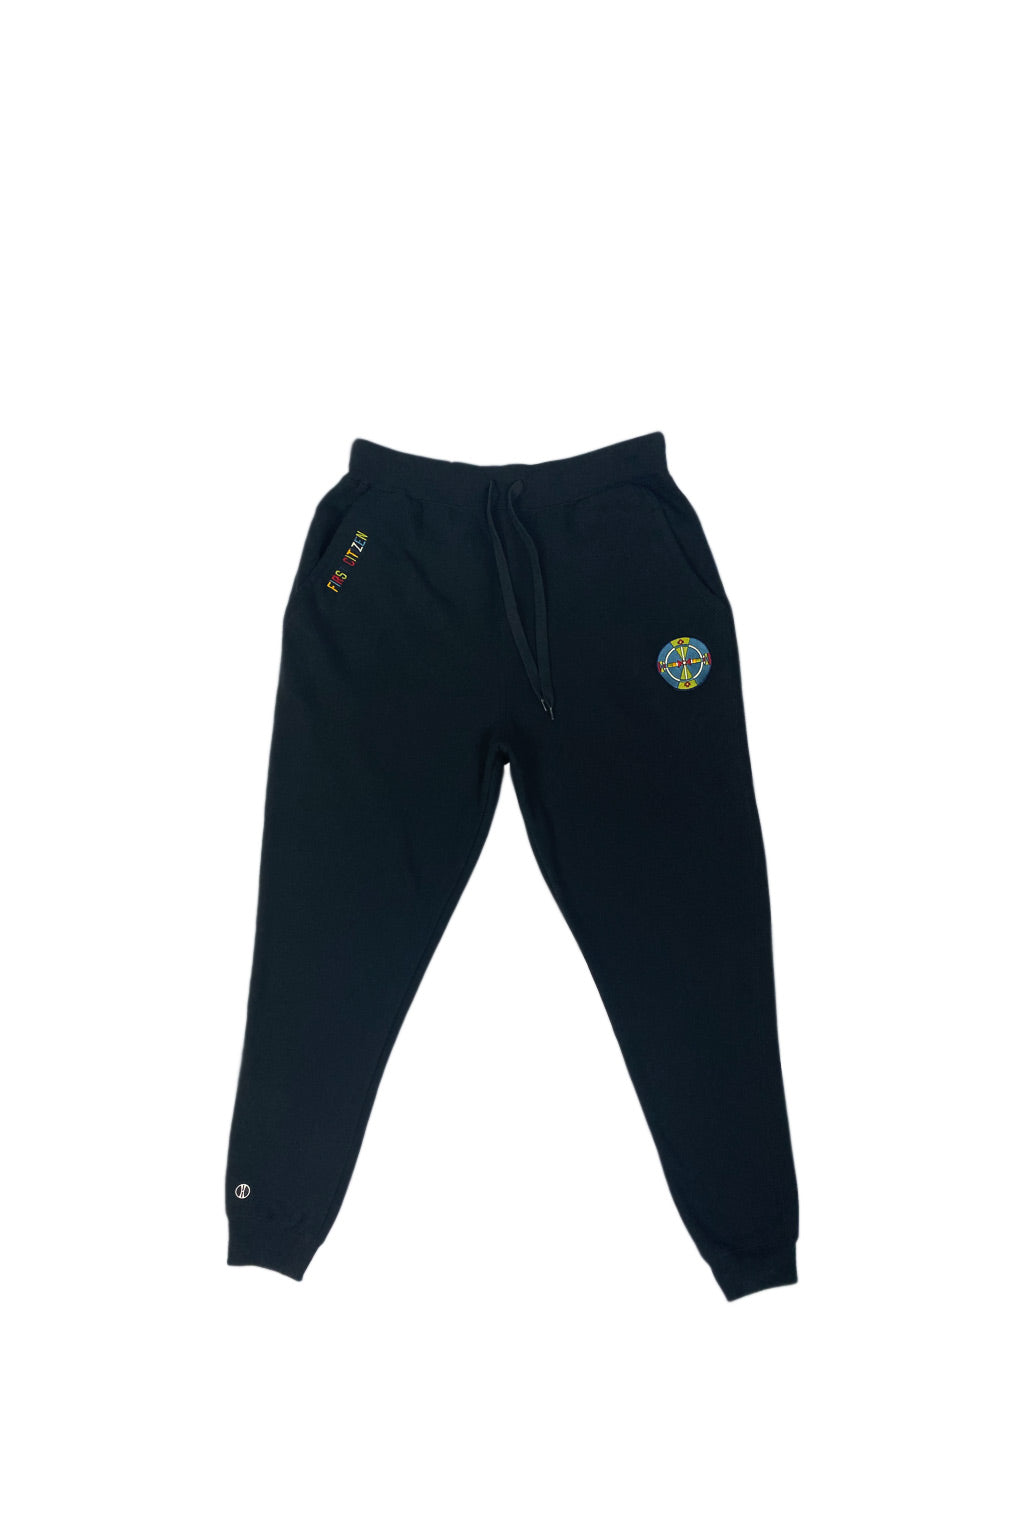 Geo Shield Jogger Sweatpants